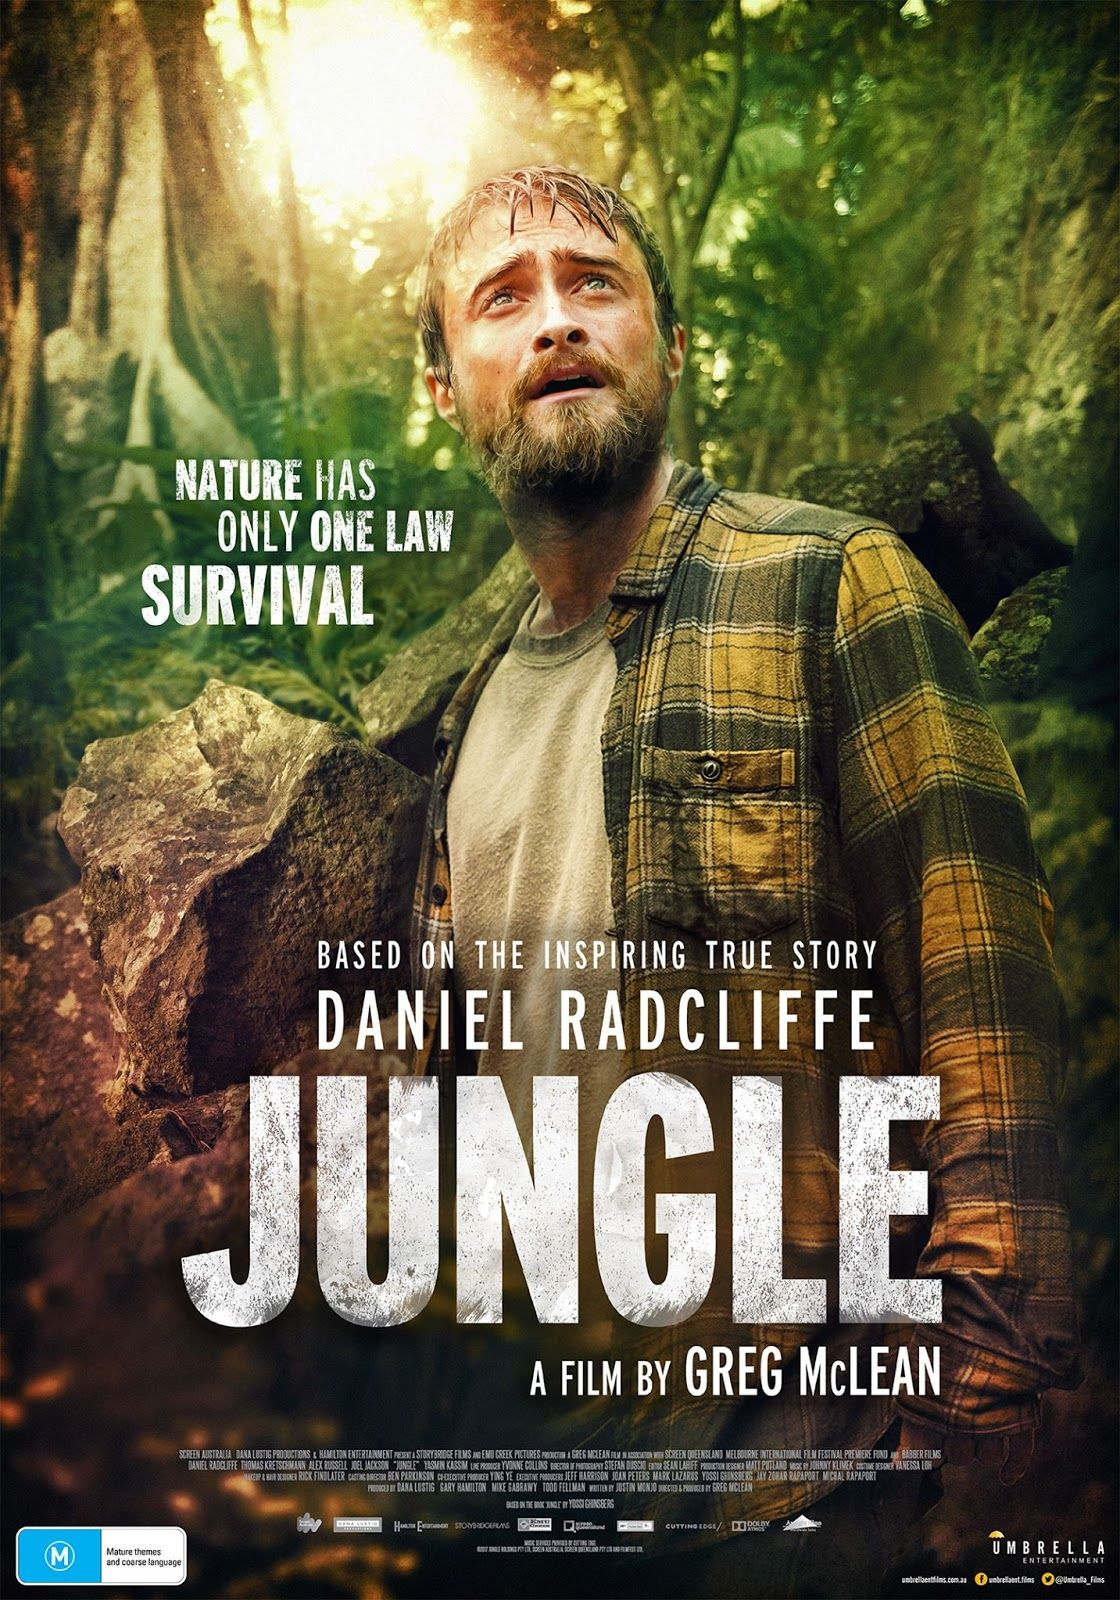 Pin By Rknishin On Movies Survival Movie Daniel Radcliffe Christian Movies